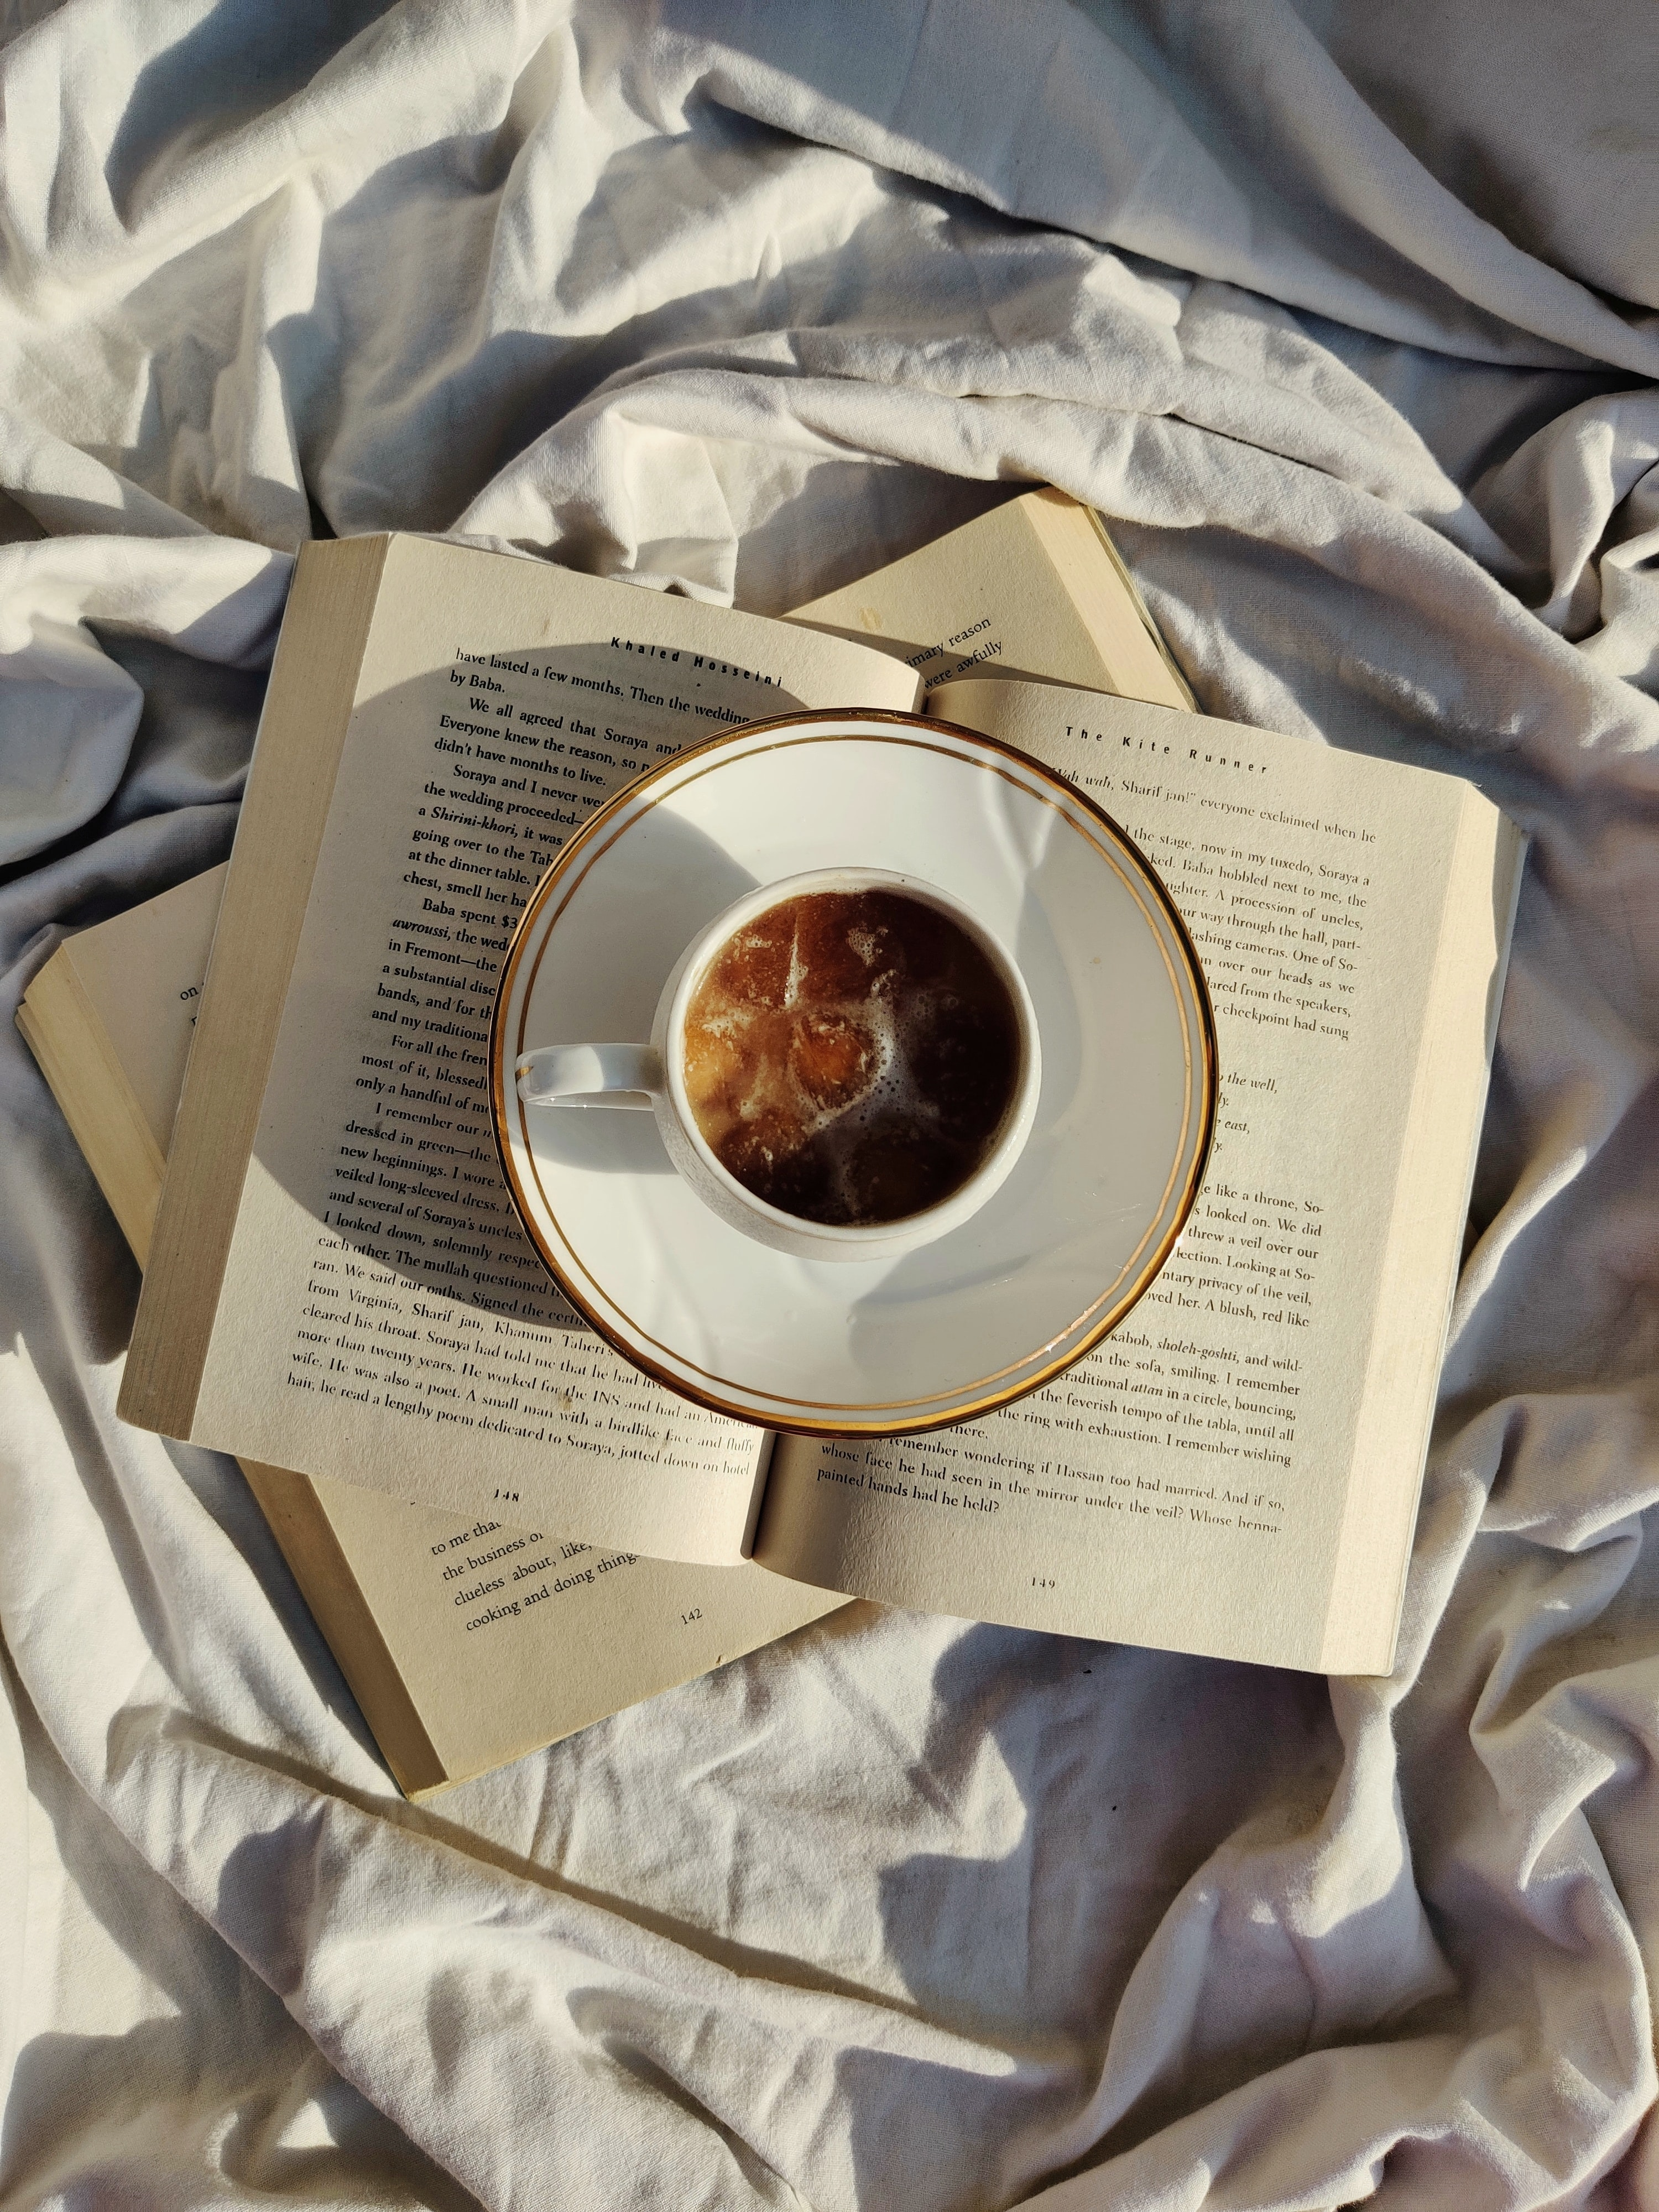 109490 download wallpaper Food, Books, Cup, Drink, Beverage, Tea screensavers and pictures for free